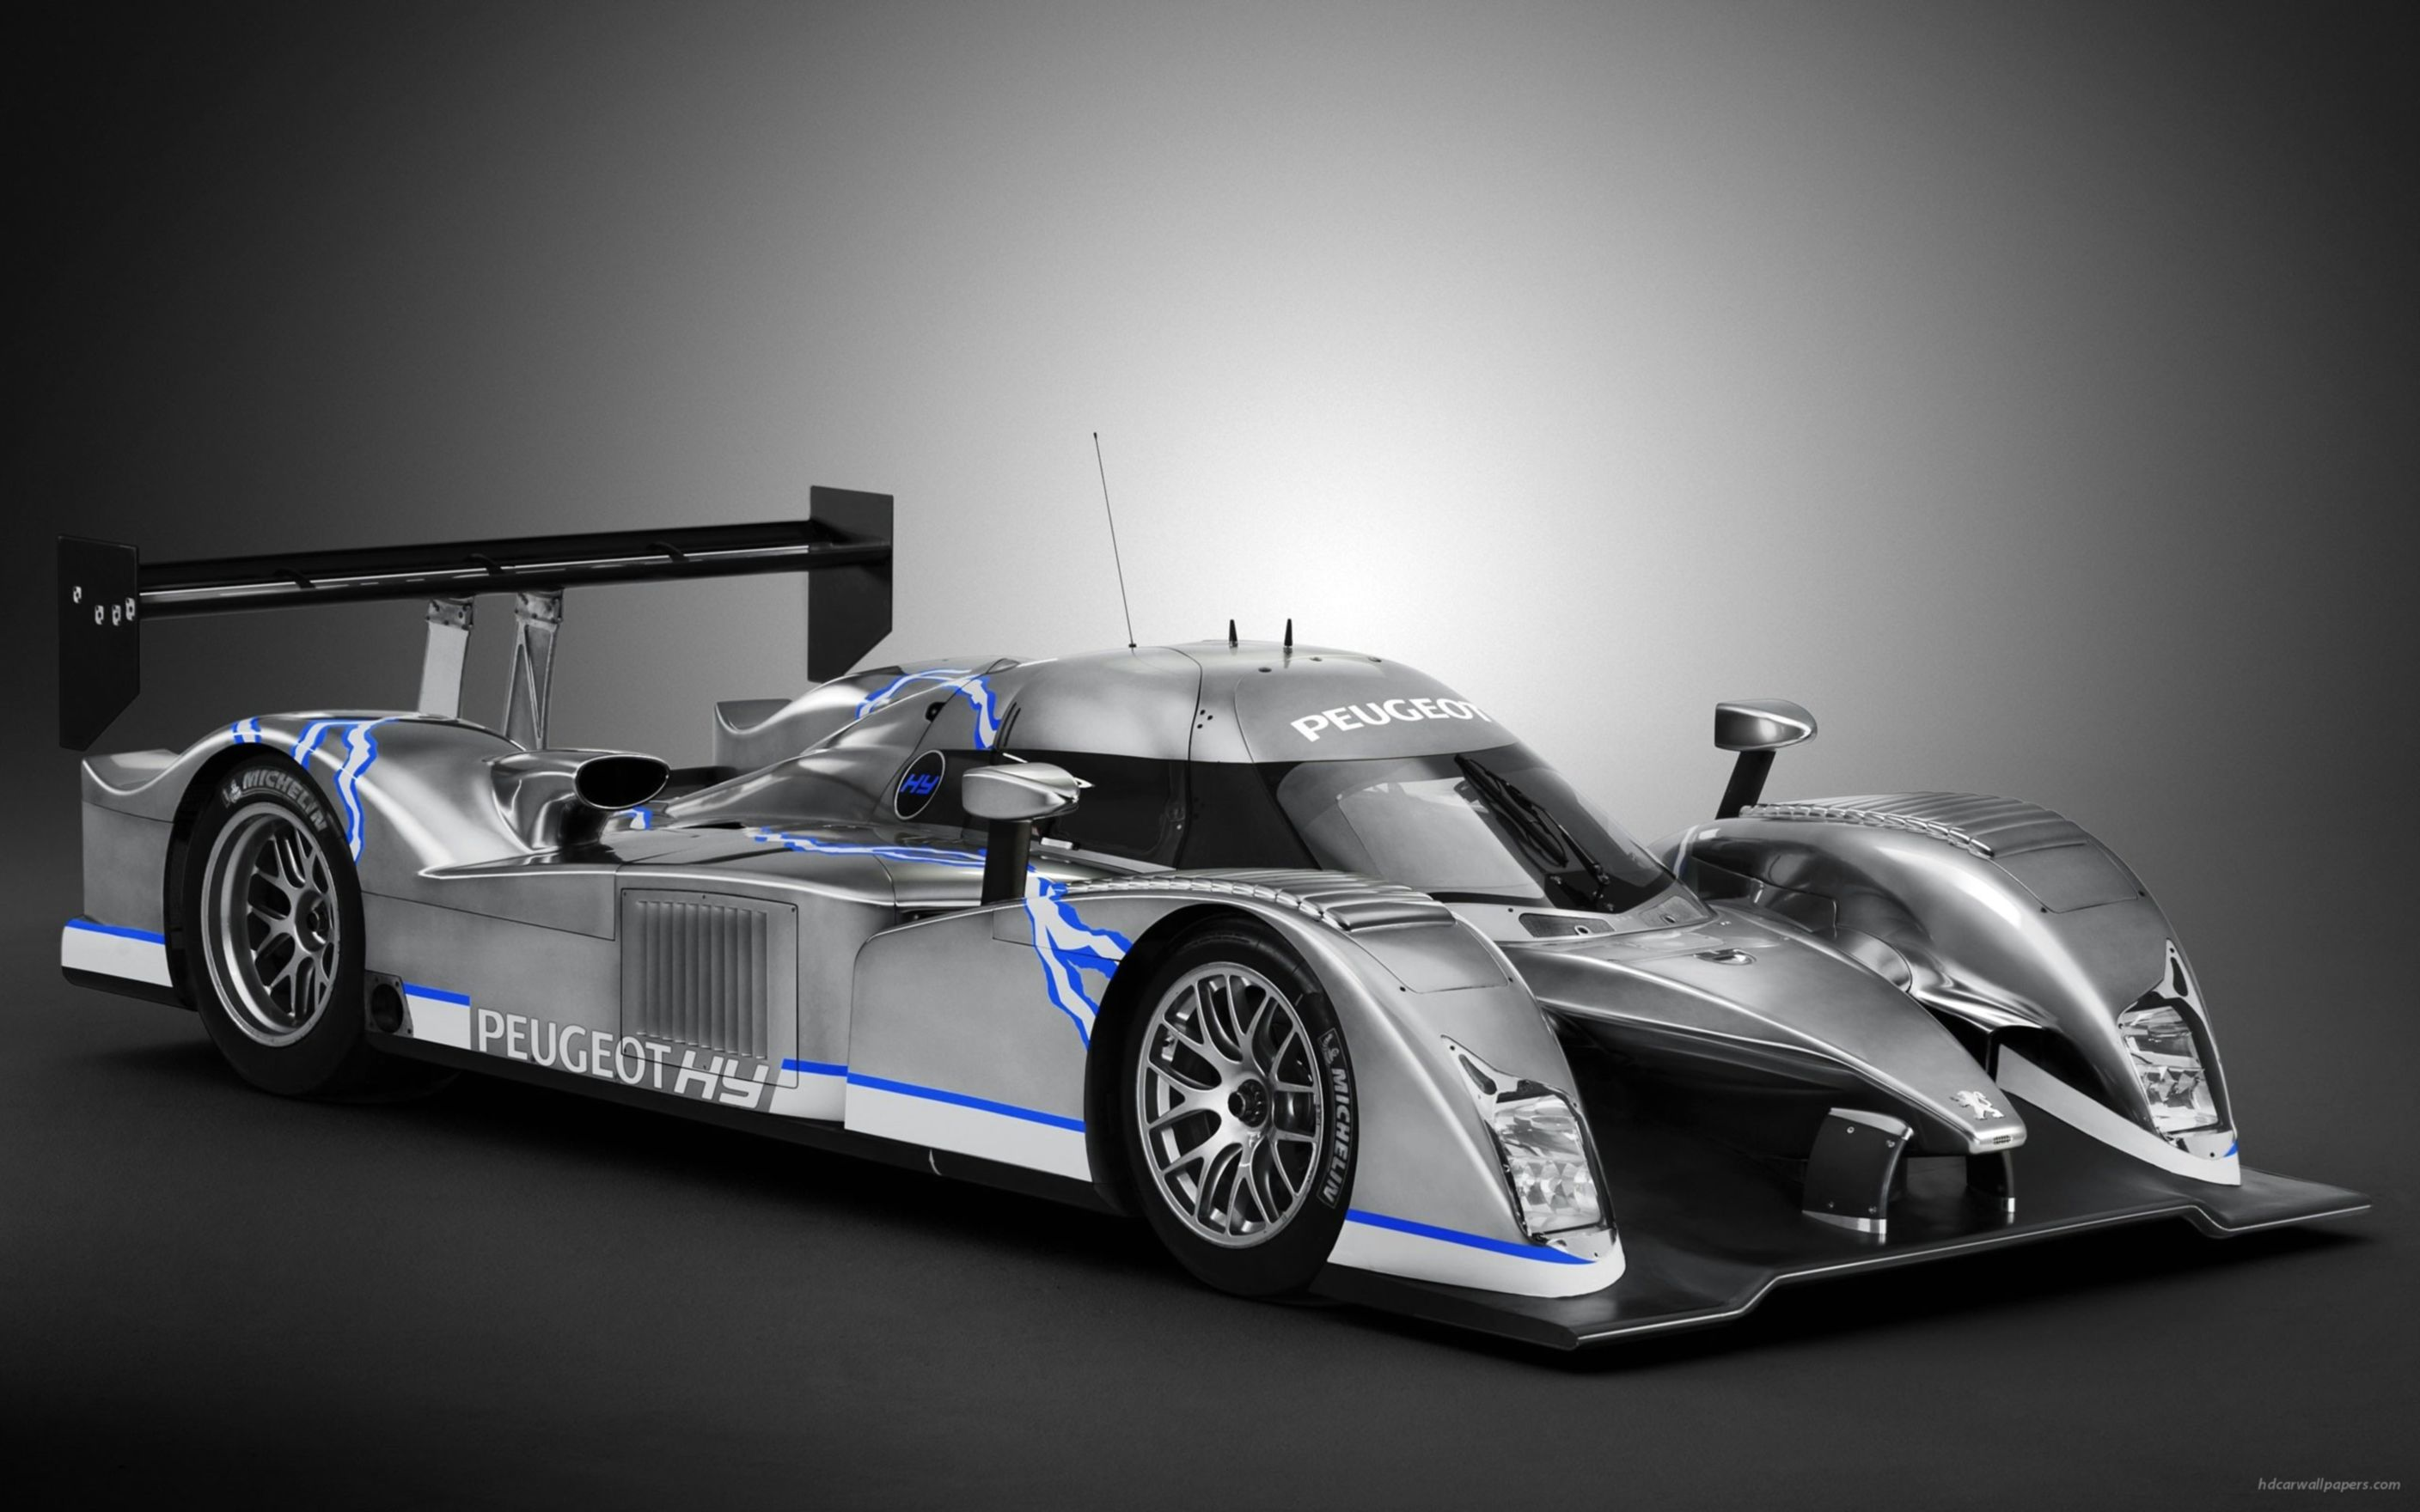 Download free HD The Peugeot 908 Hybrid Race Wide Wallpaper, image